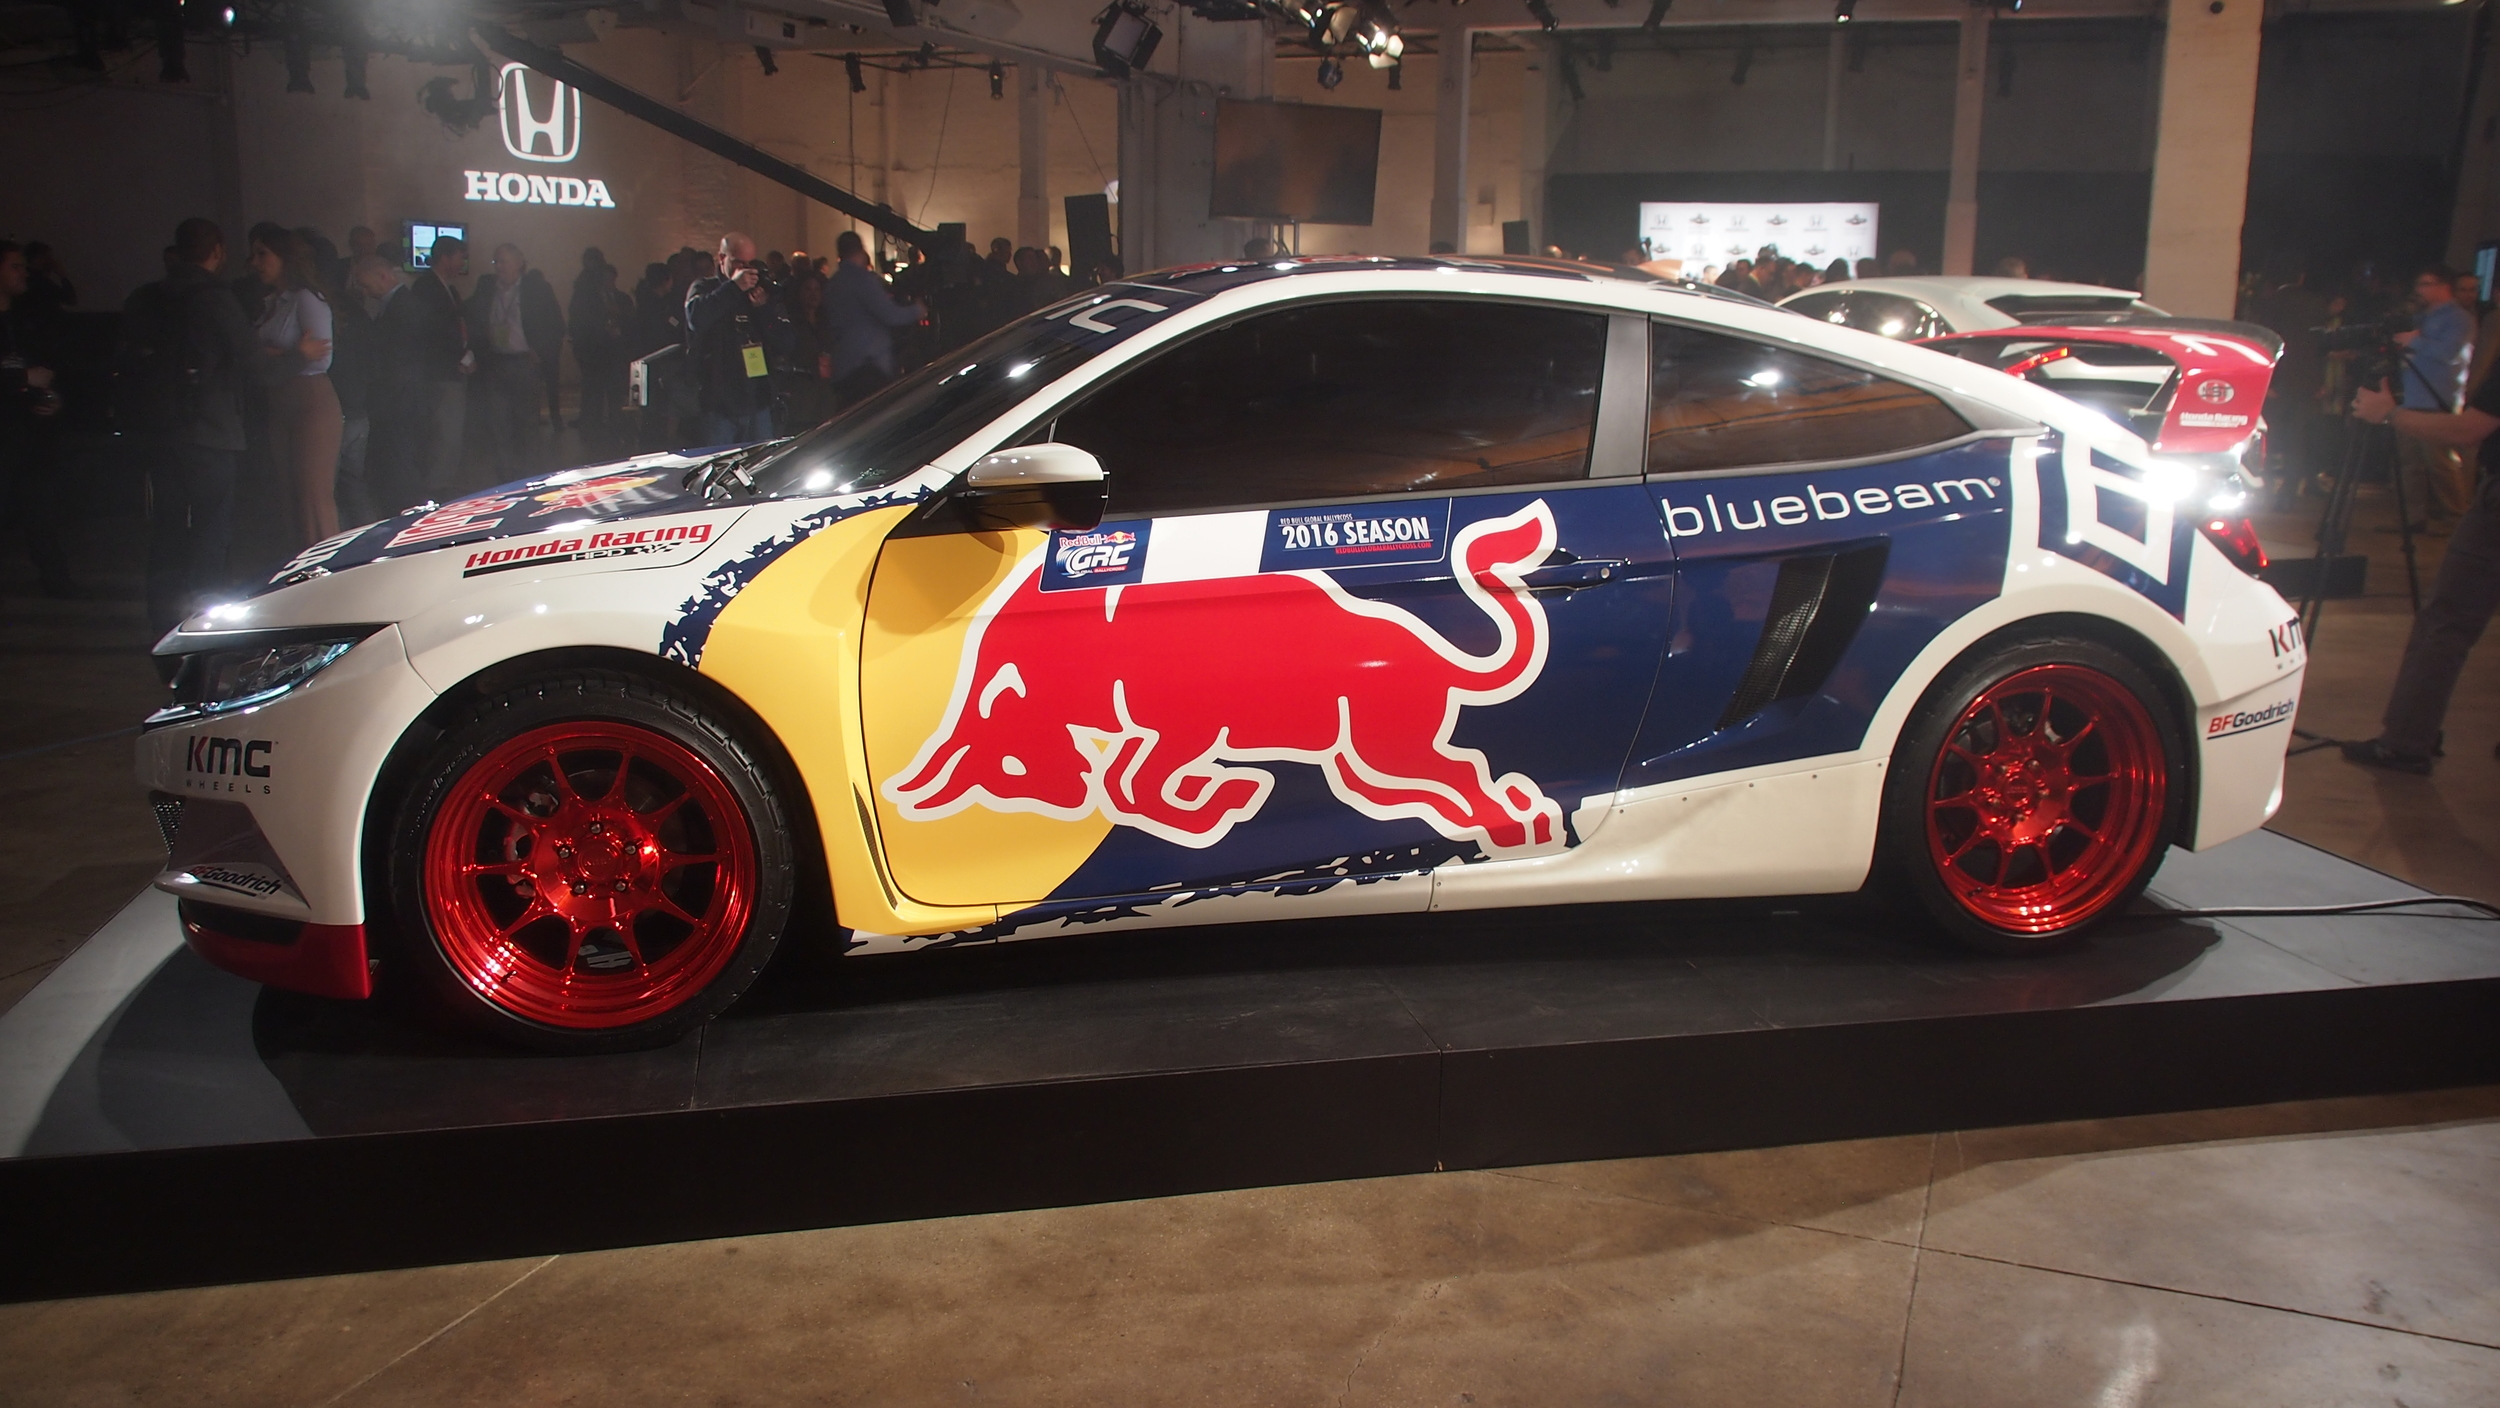 2016 honda civic coupe red bull global rallycross race car debuts in - The Honda Civic Coupe Grx Car Will Be Ready To Compete In The Season Opener On May 21st And 22nd At Phoenix S Wild Horse Pace Motorsports Park